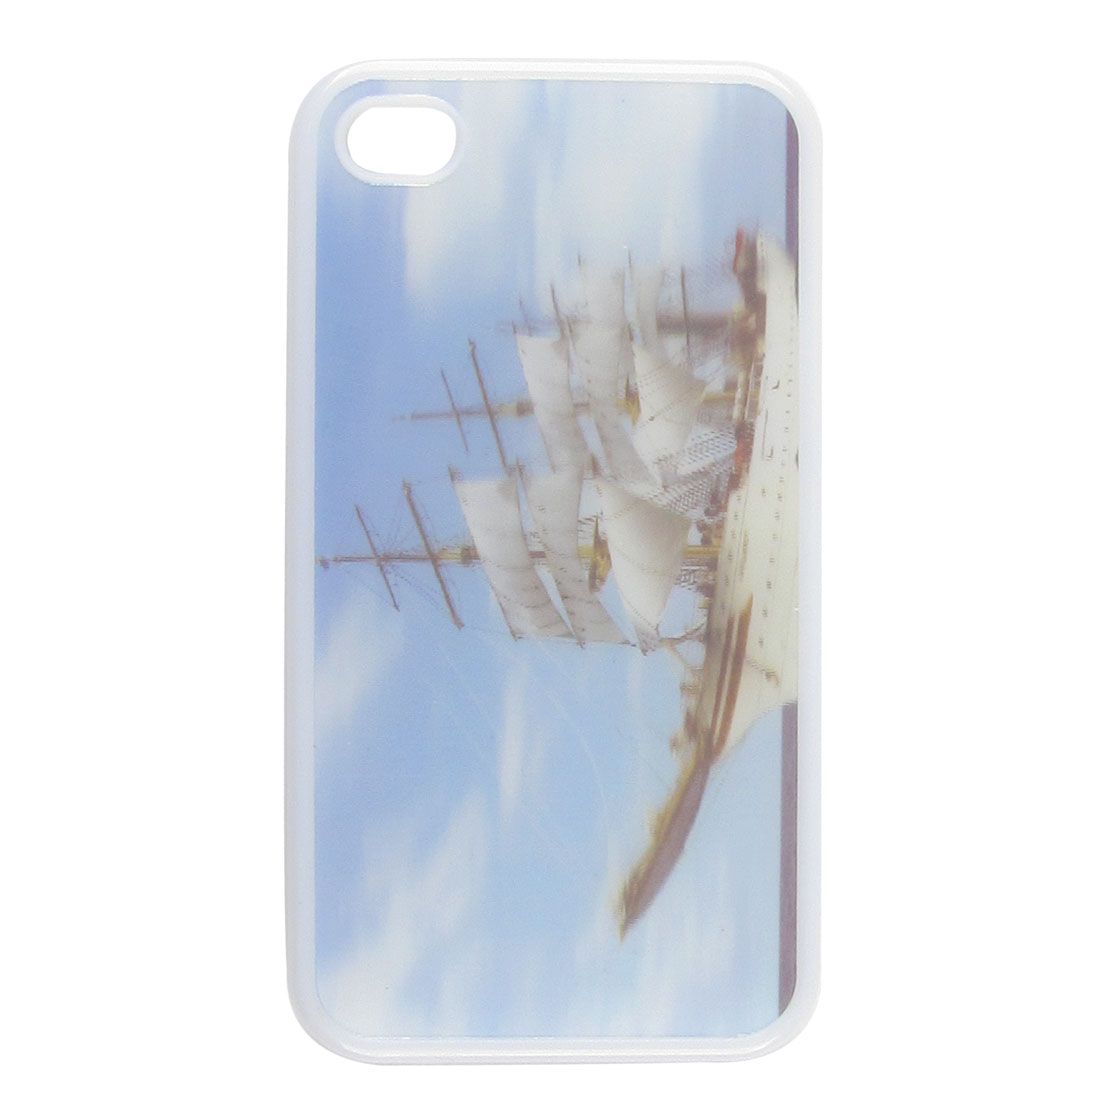 White Plastic 3D Sailing Vessel Print Protector Back Case for Apple iPhone 4 4G